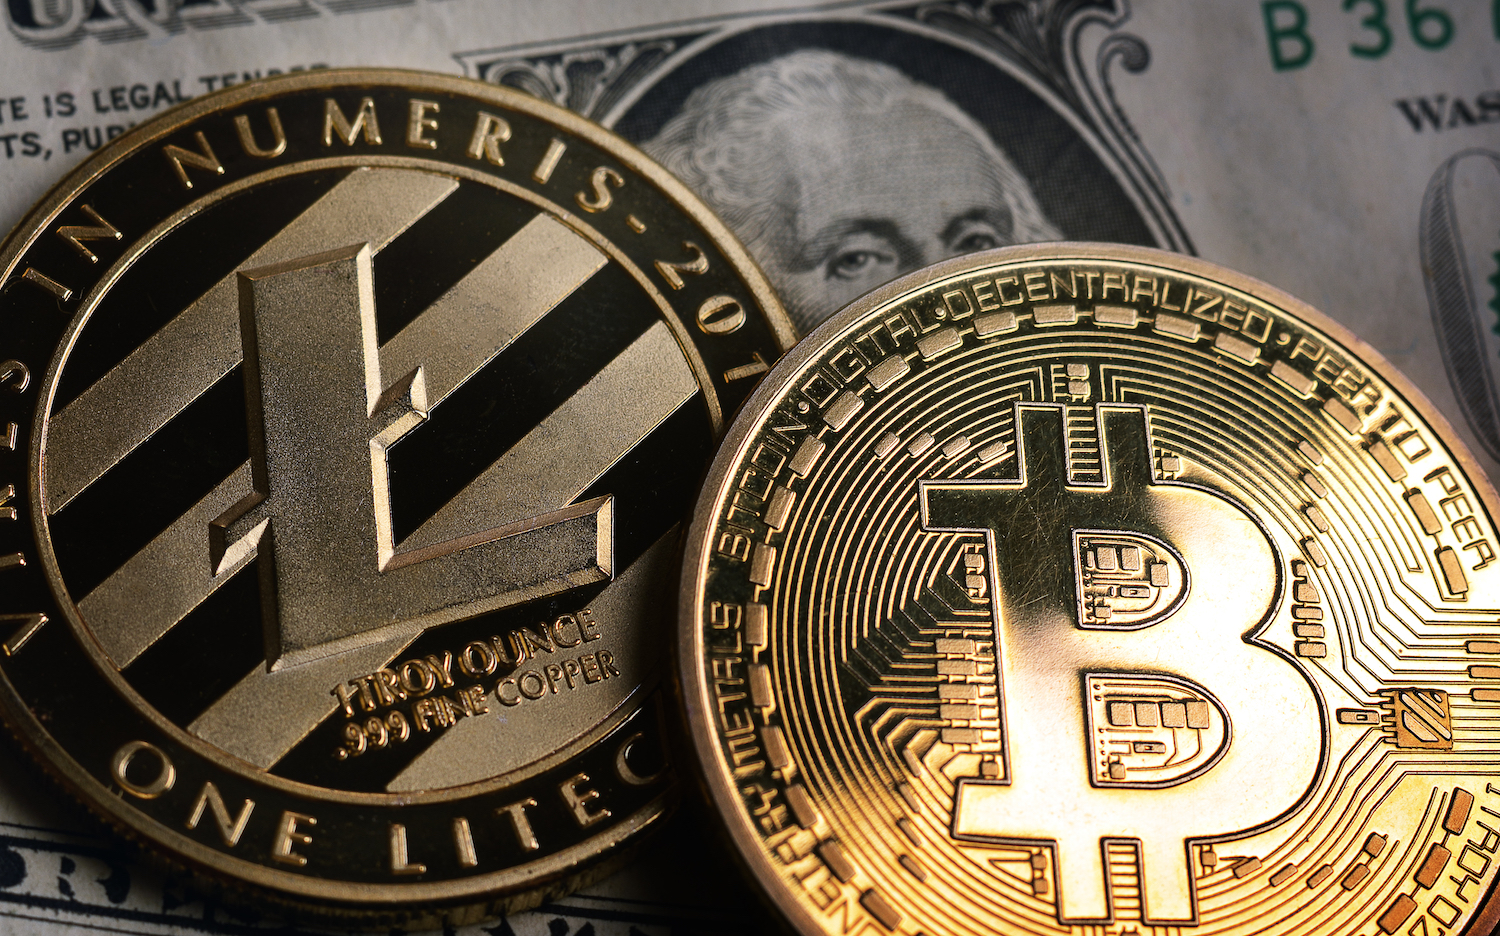 Litecoin Led Bitcoin's Price Rally, Now It's Hinting at a Pullback thumbnail